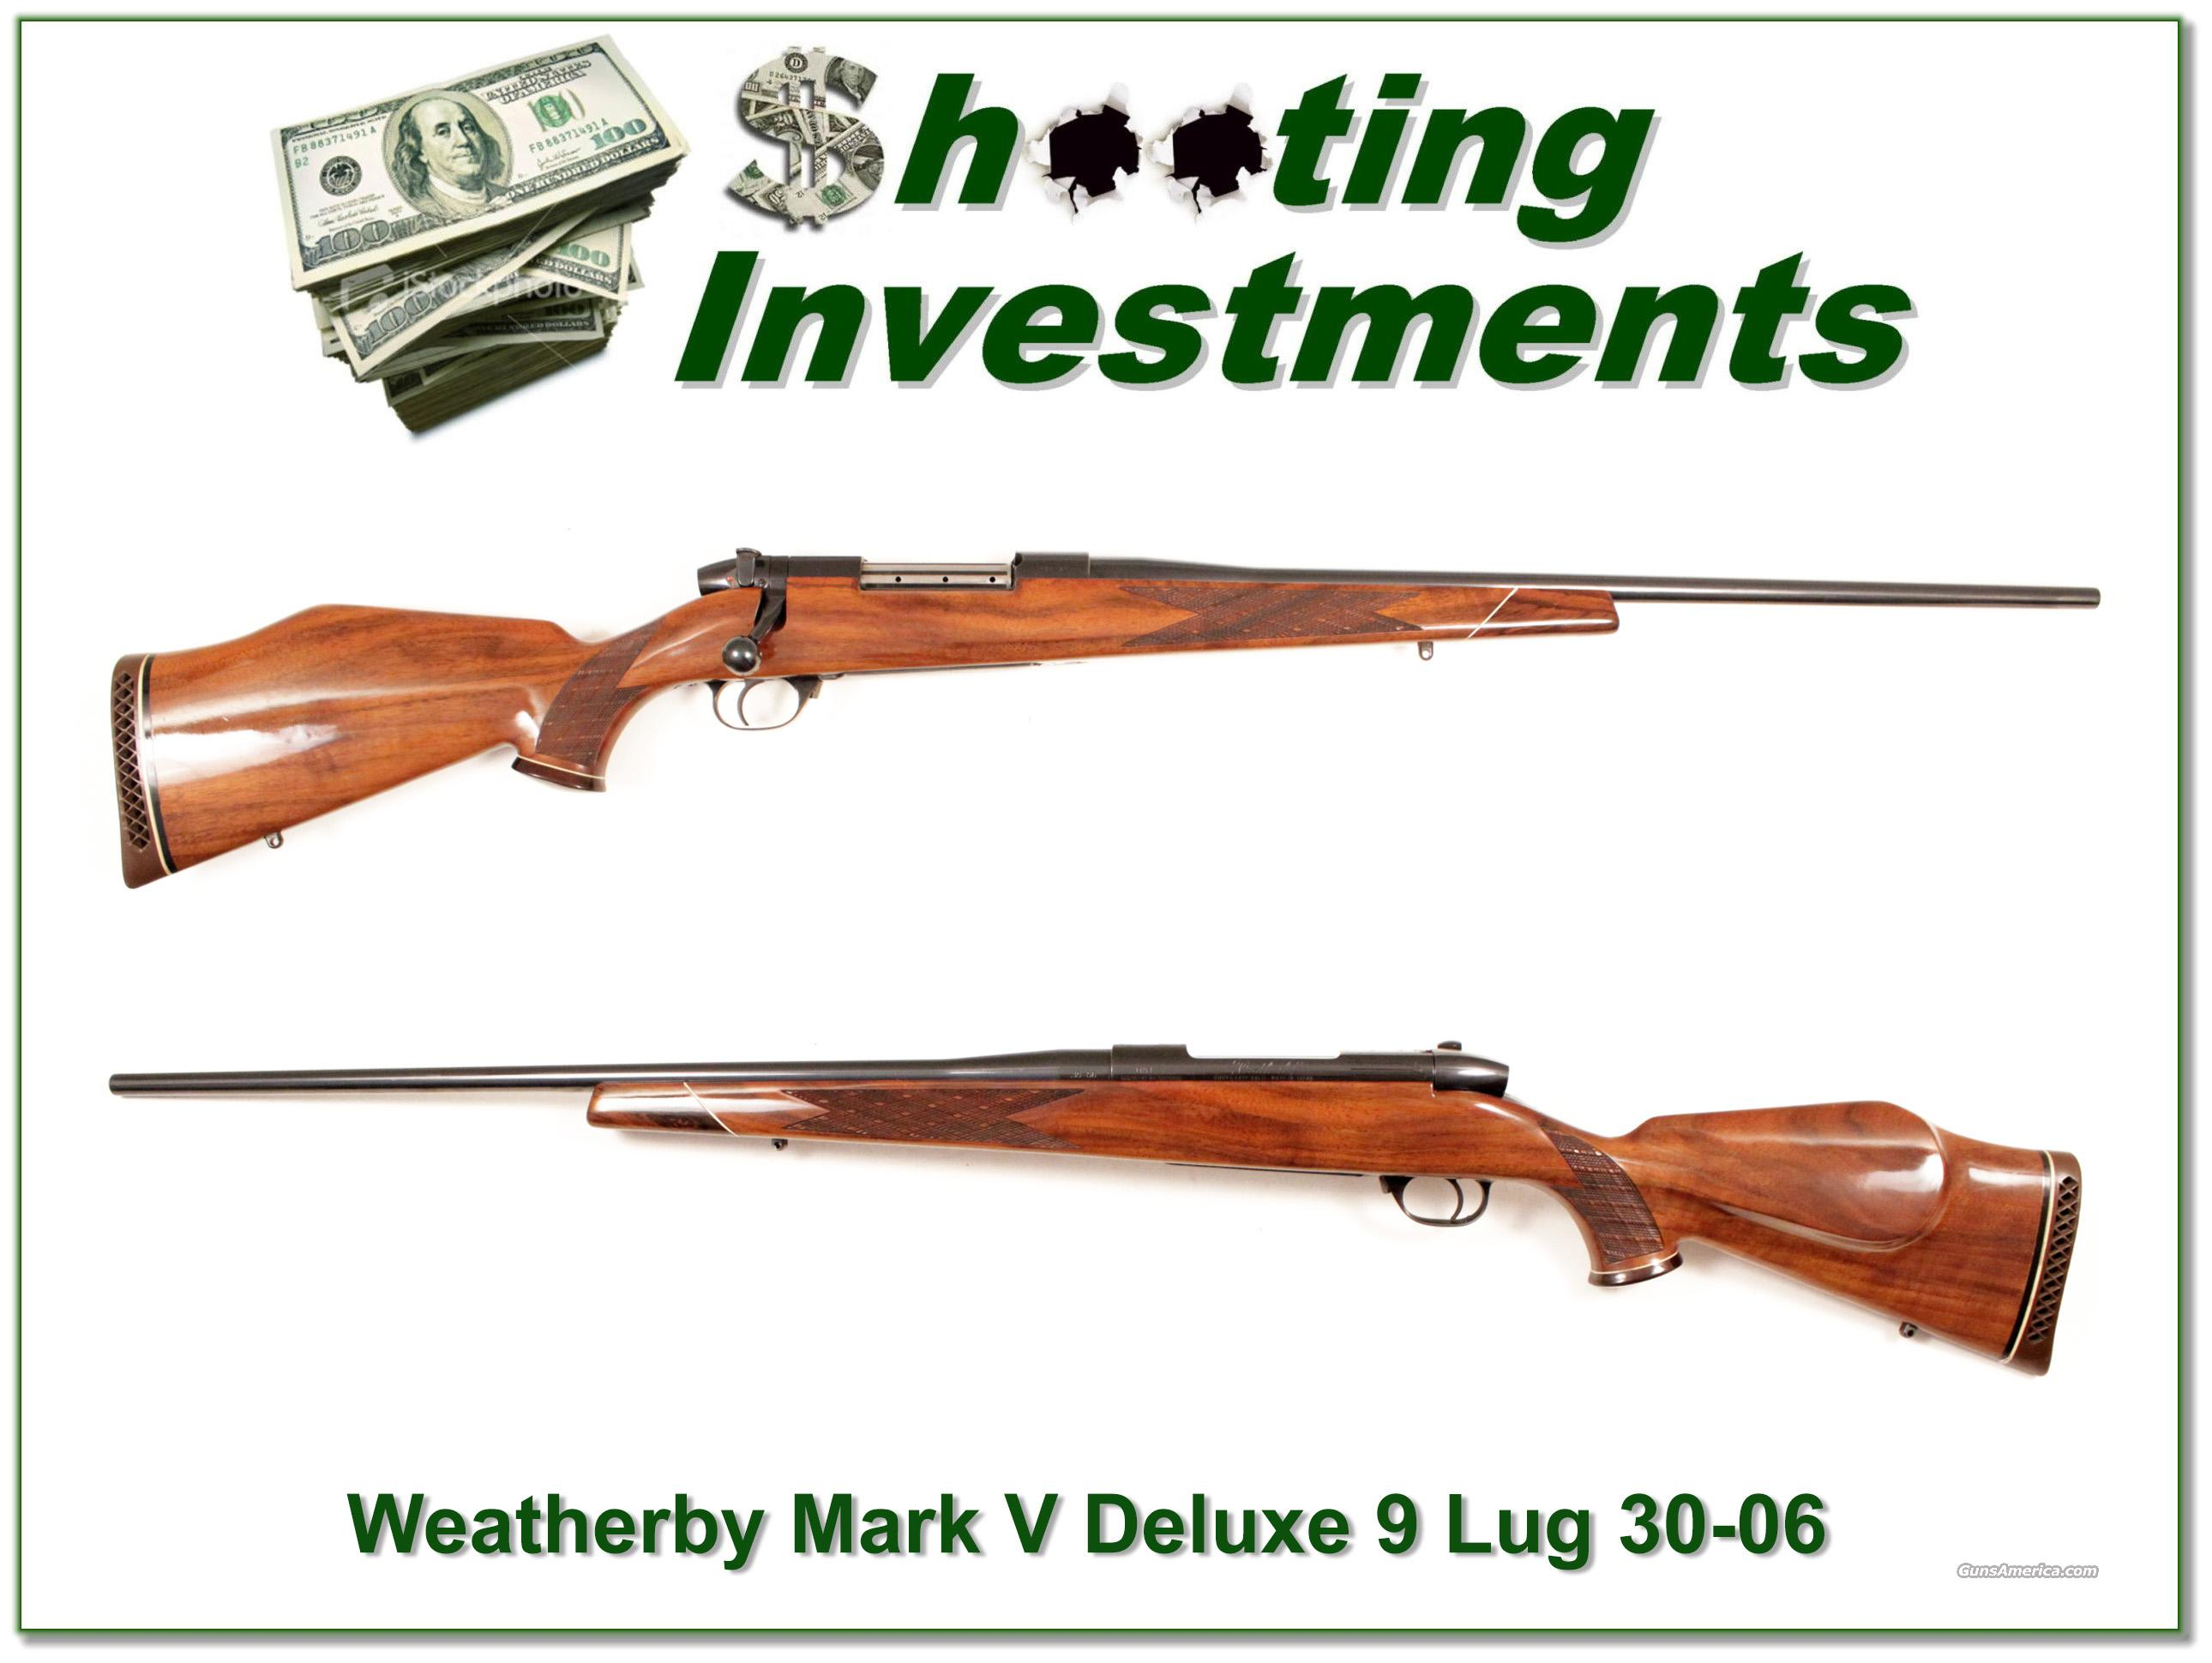 Weatherby Mark V Deluxe 9 Lug 30-06 Exc Cond  Guns > Rifles > Weatherby Rifles > Sporting